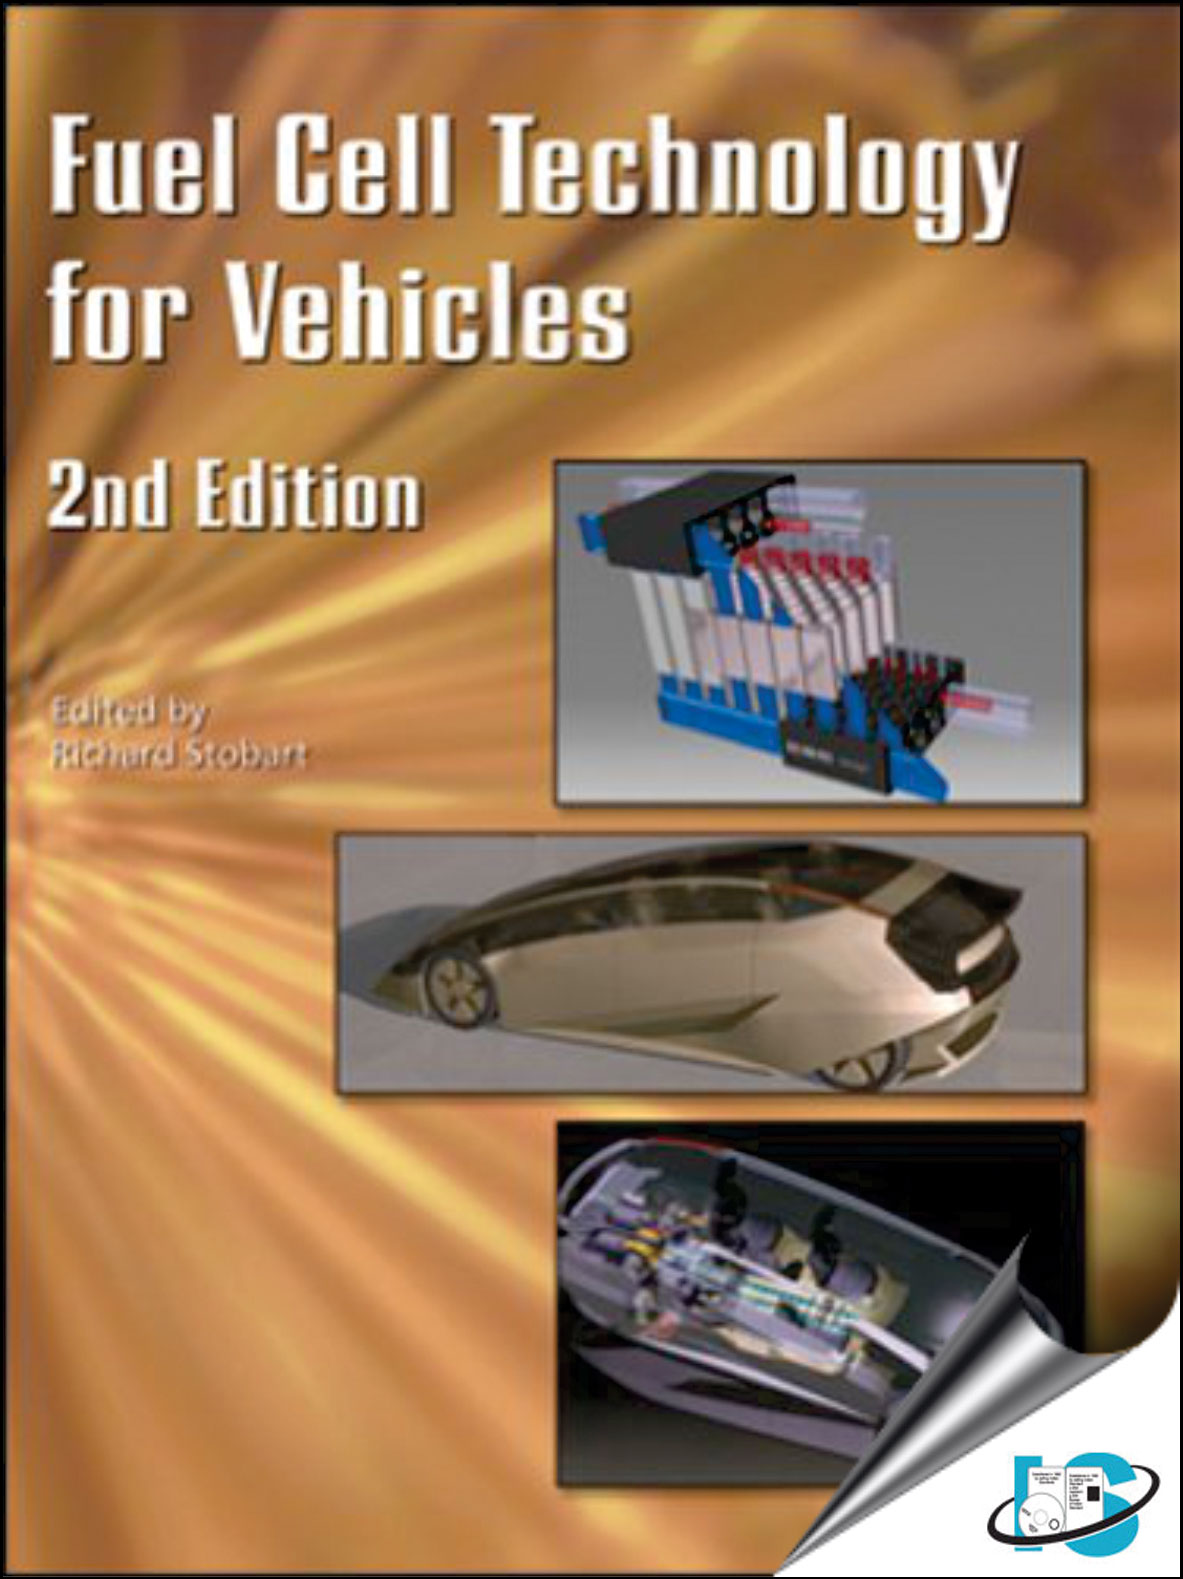 Fuel Cell Technology for Vehicles, 2nd Edition, Richard